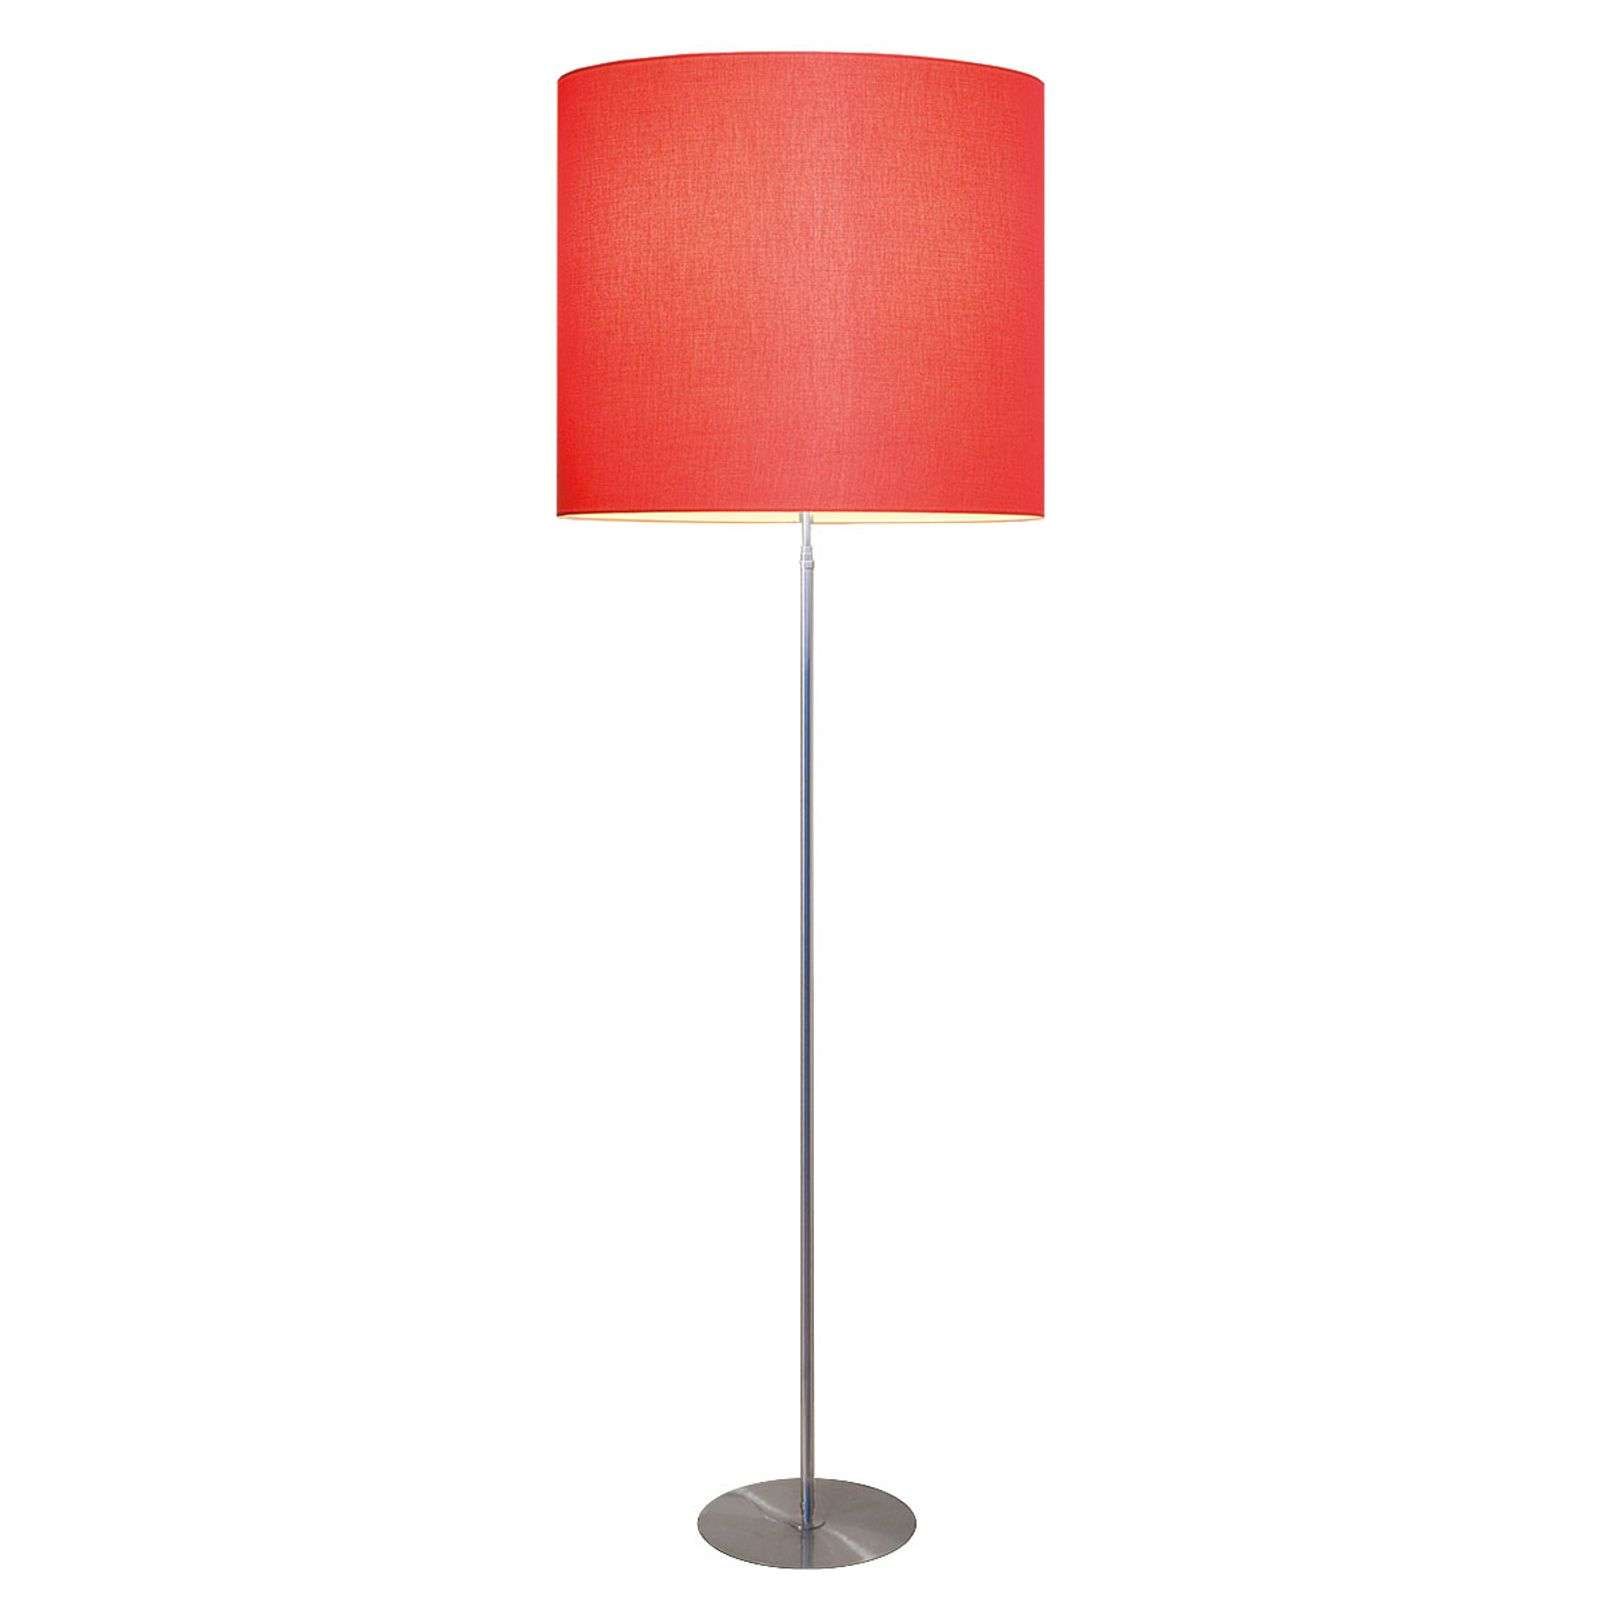 Lampadaire moderne Tono rouge